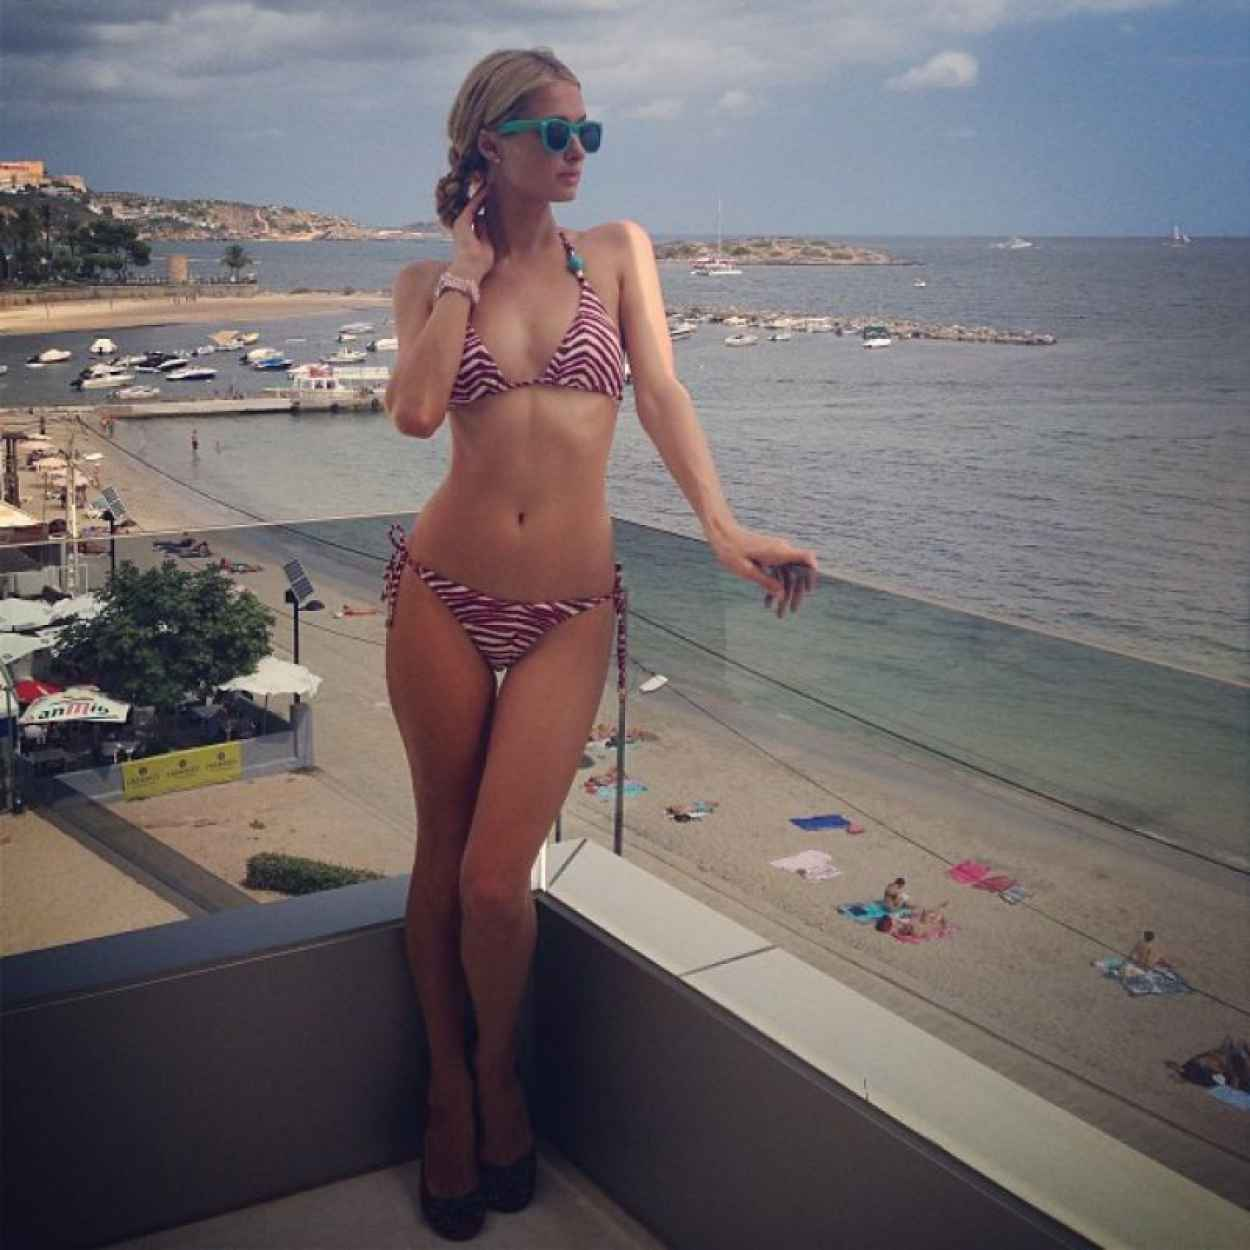 Paris Hilton Bikini Photos - Twitter and Instagram - Year 2015-1